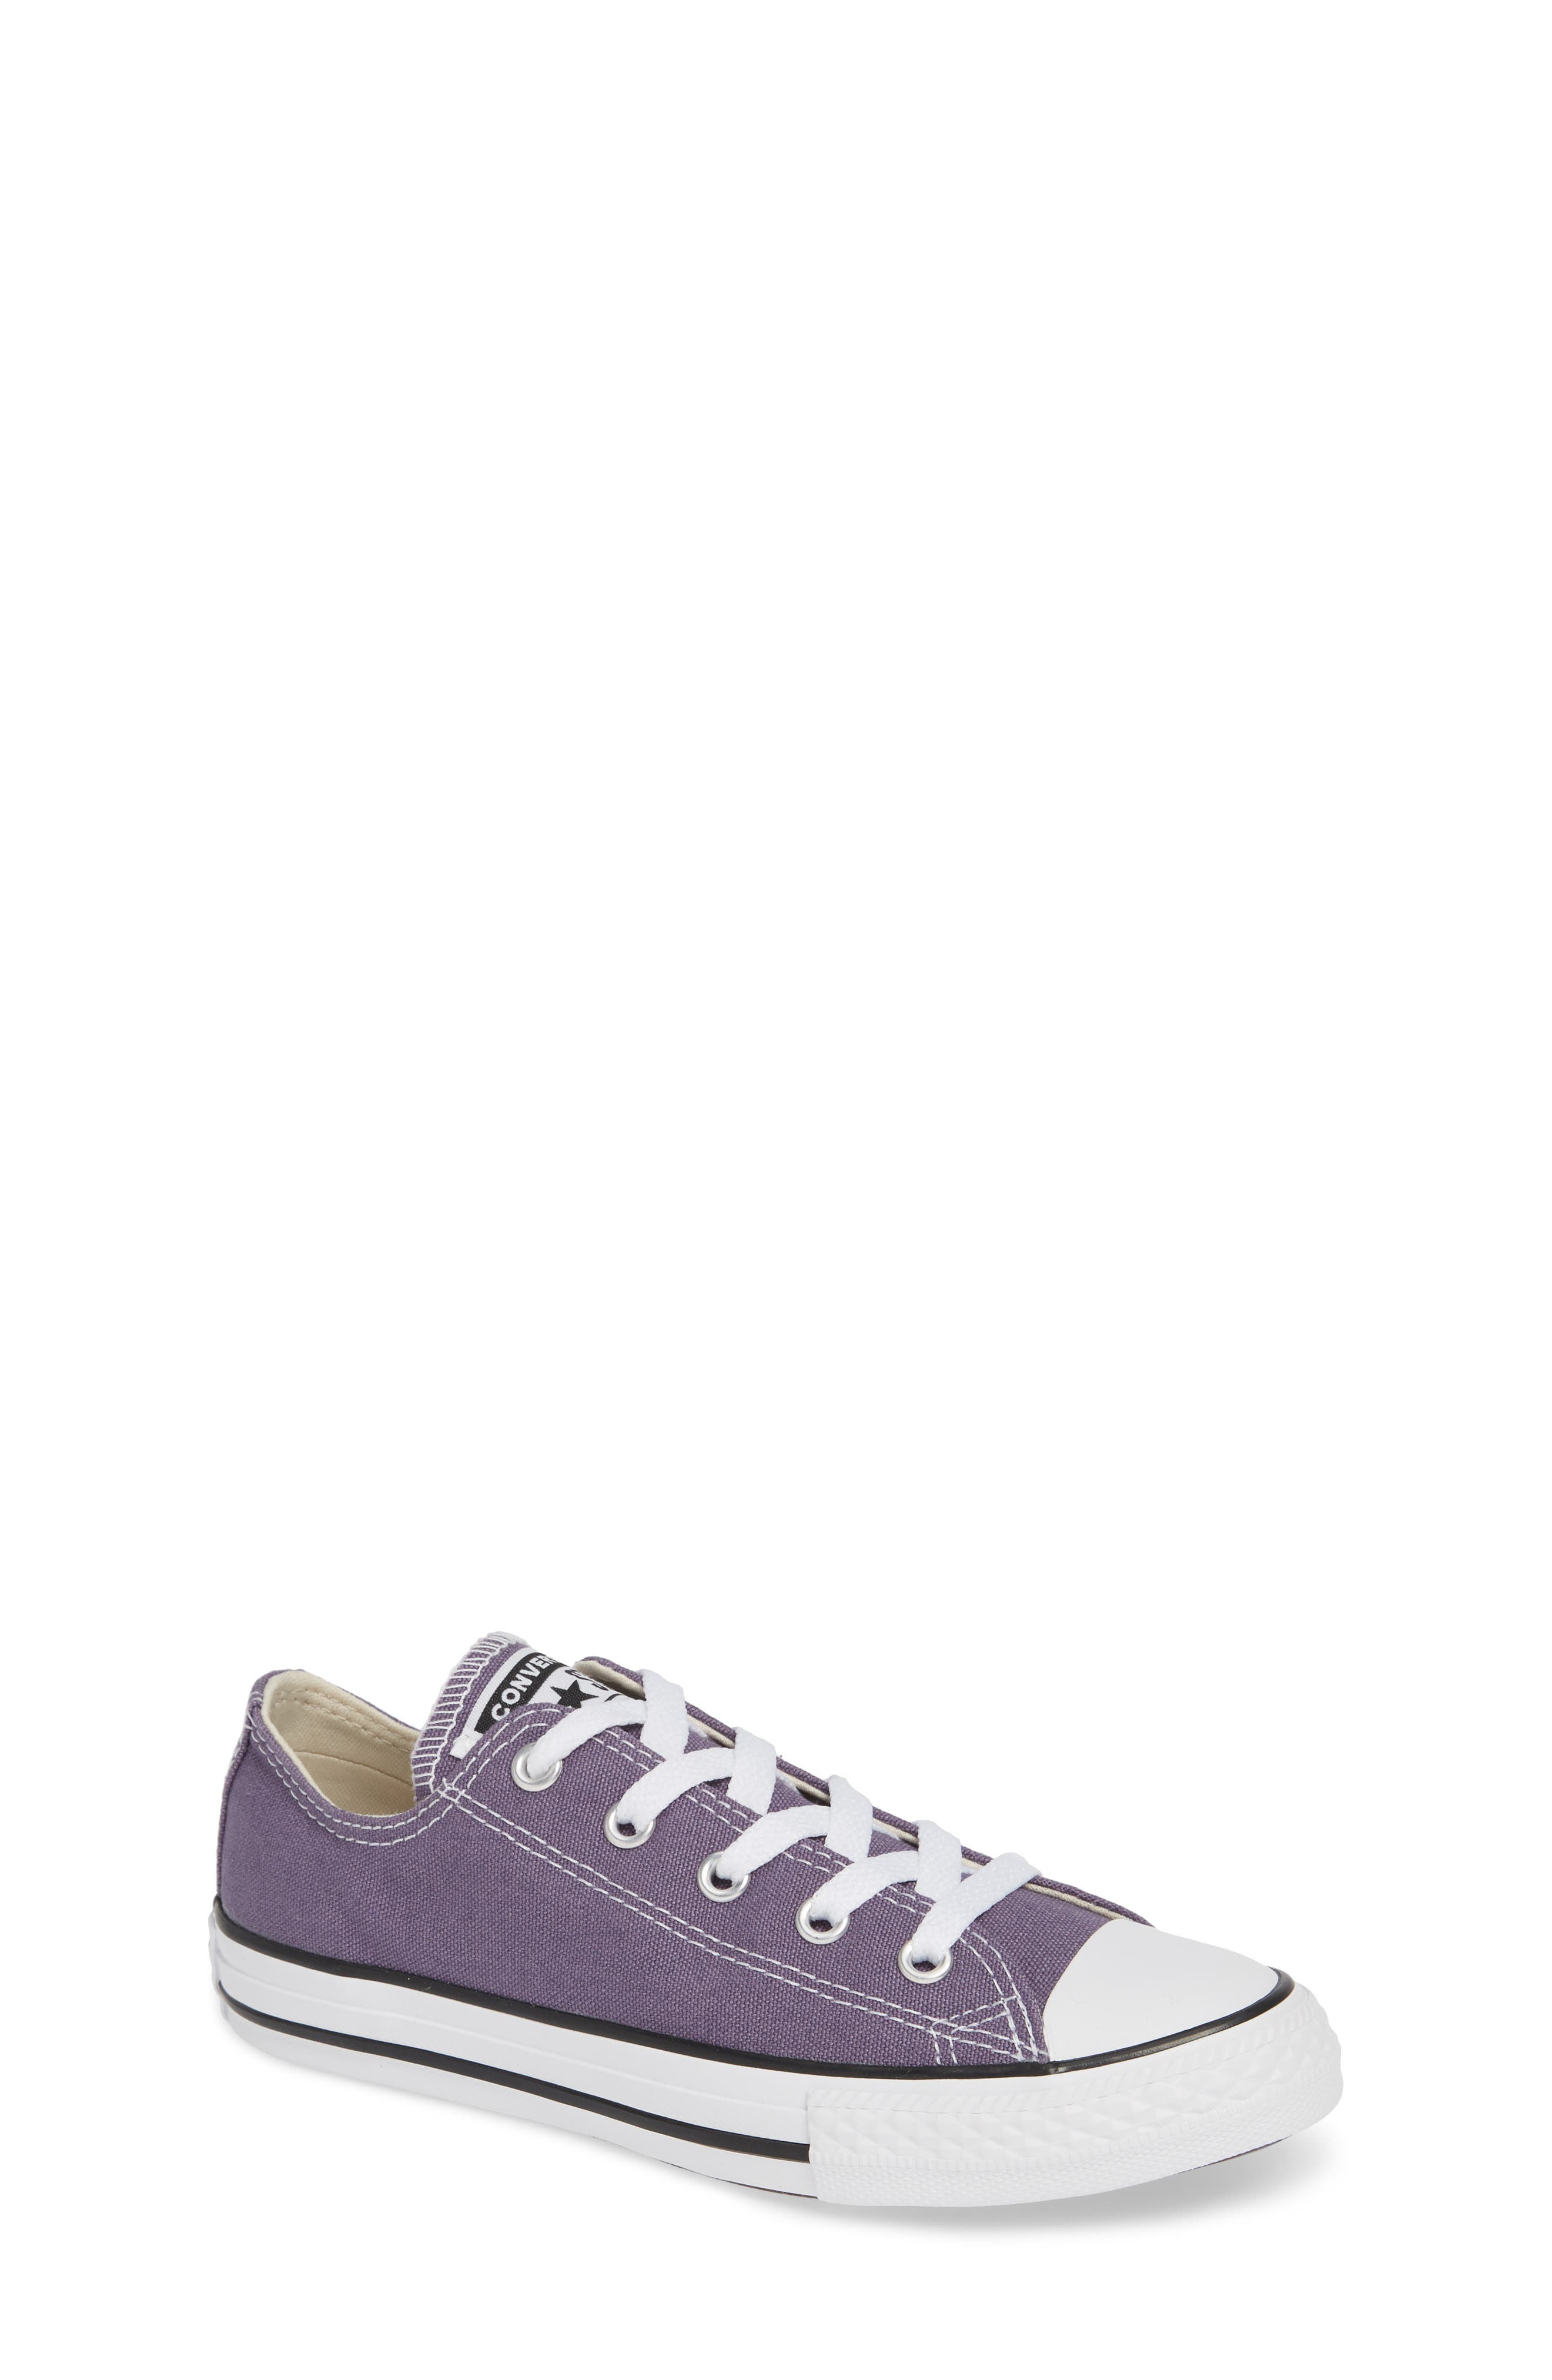 CONVERSE Chuck Taylor<sup>®</sup> Sneaker, Main, color, MOODY PURPLE/ NATURAL IVORY